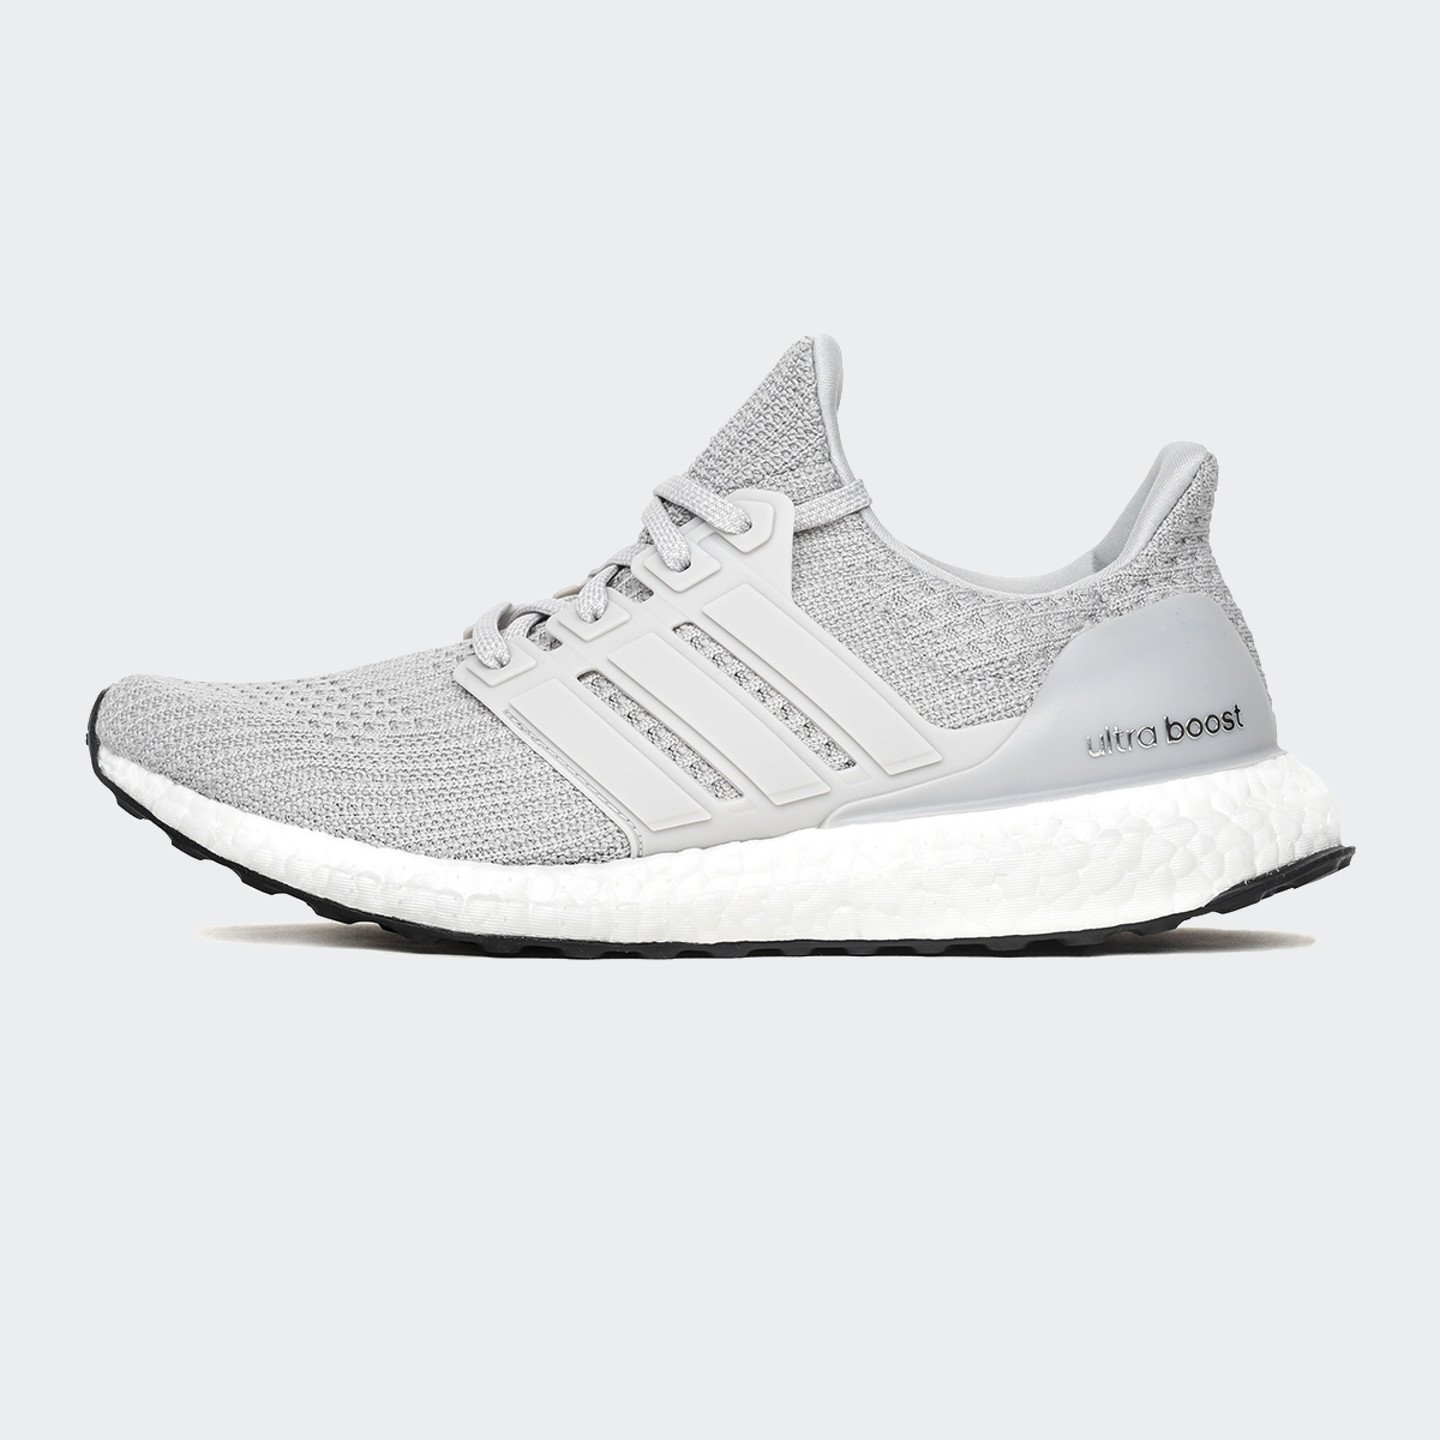 Adidas Ultra Boost 4.0 'Tech Grey' Tech Grey / White / Core Black BB6167